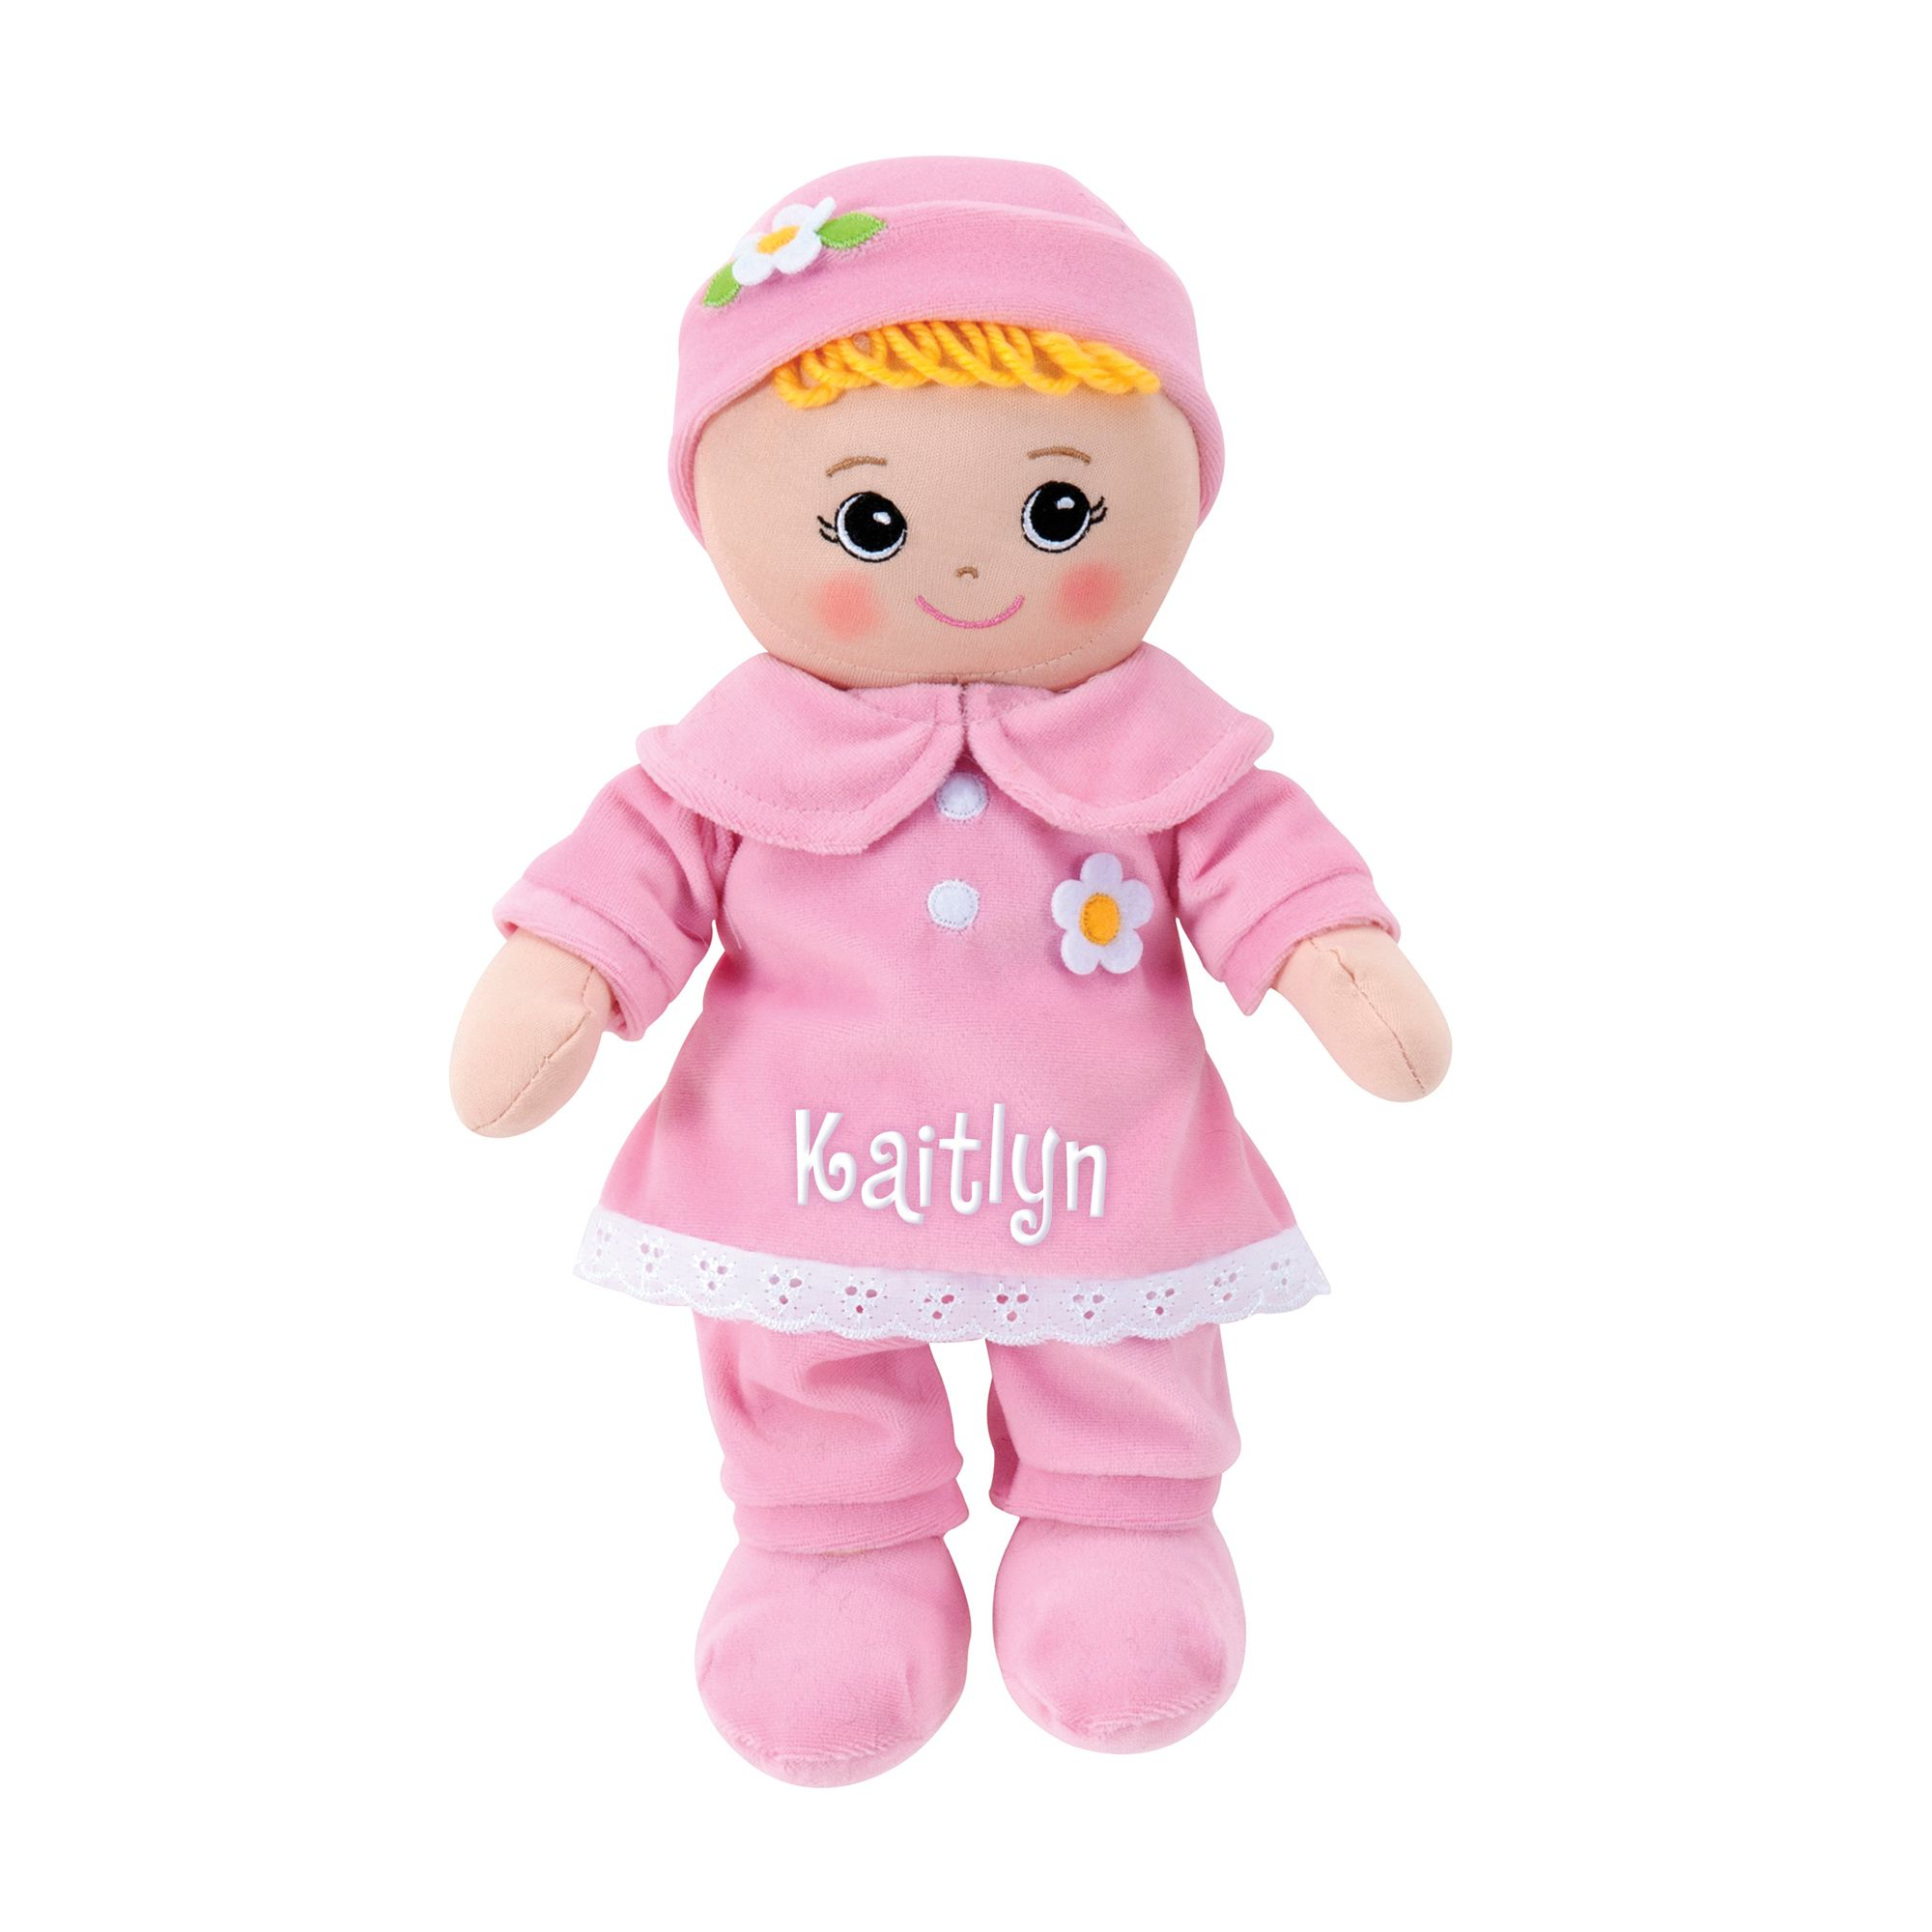 Personalized baby doll baby gifts unique keepsake dolls baby personalized baby doll baby gifts unique keepsake dolls negle Gallery